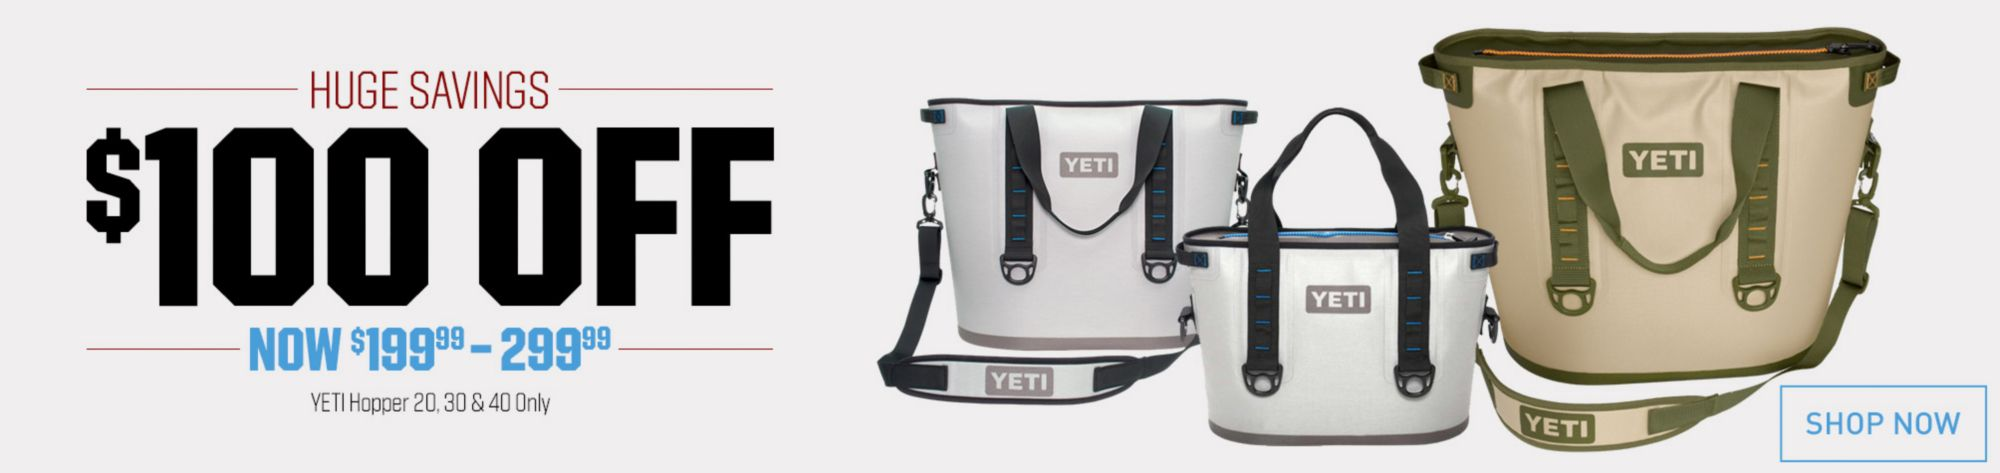 $100 Off Yeti Hoppers